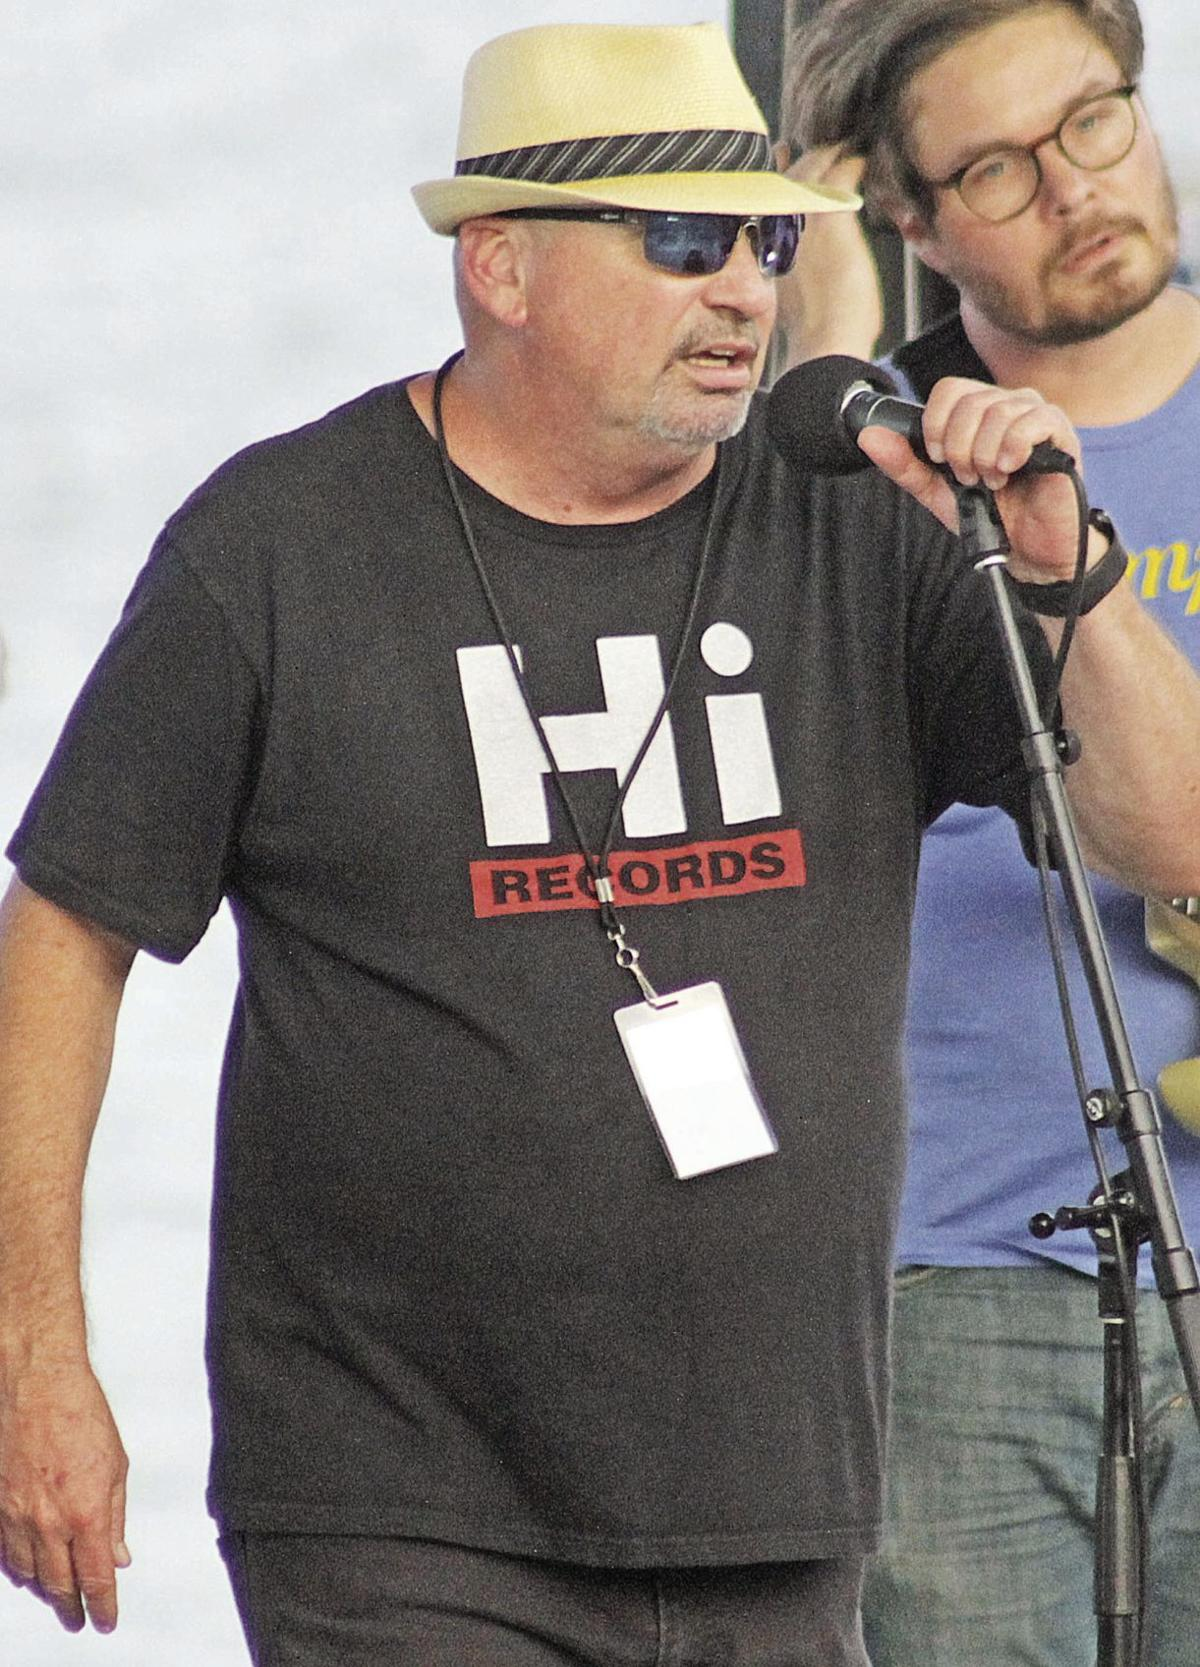 Hot August Blues Jetton at the mic